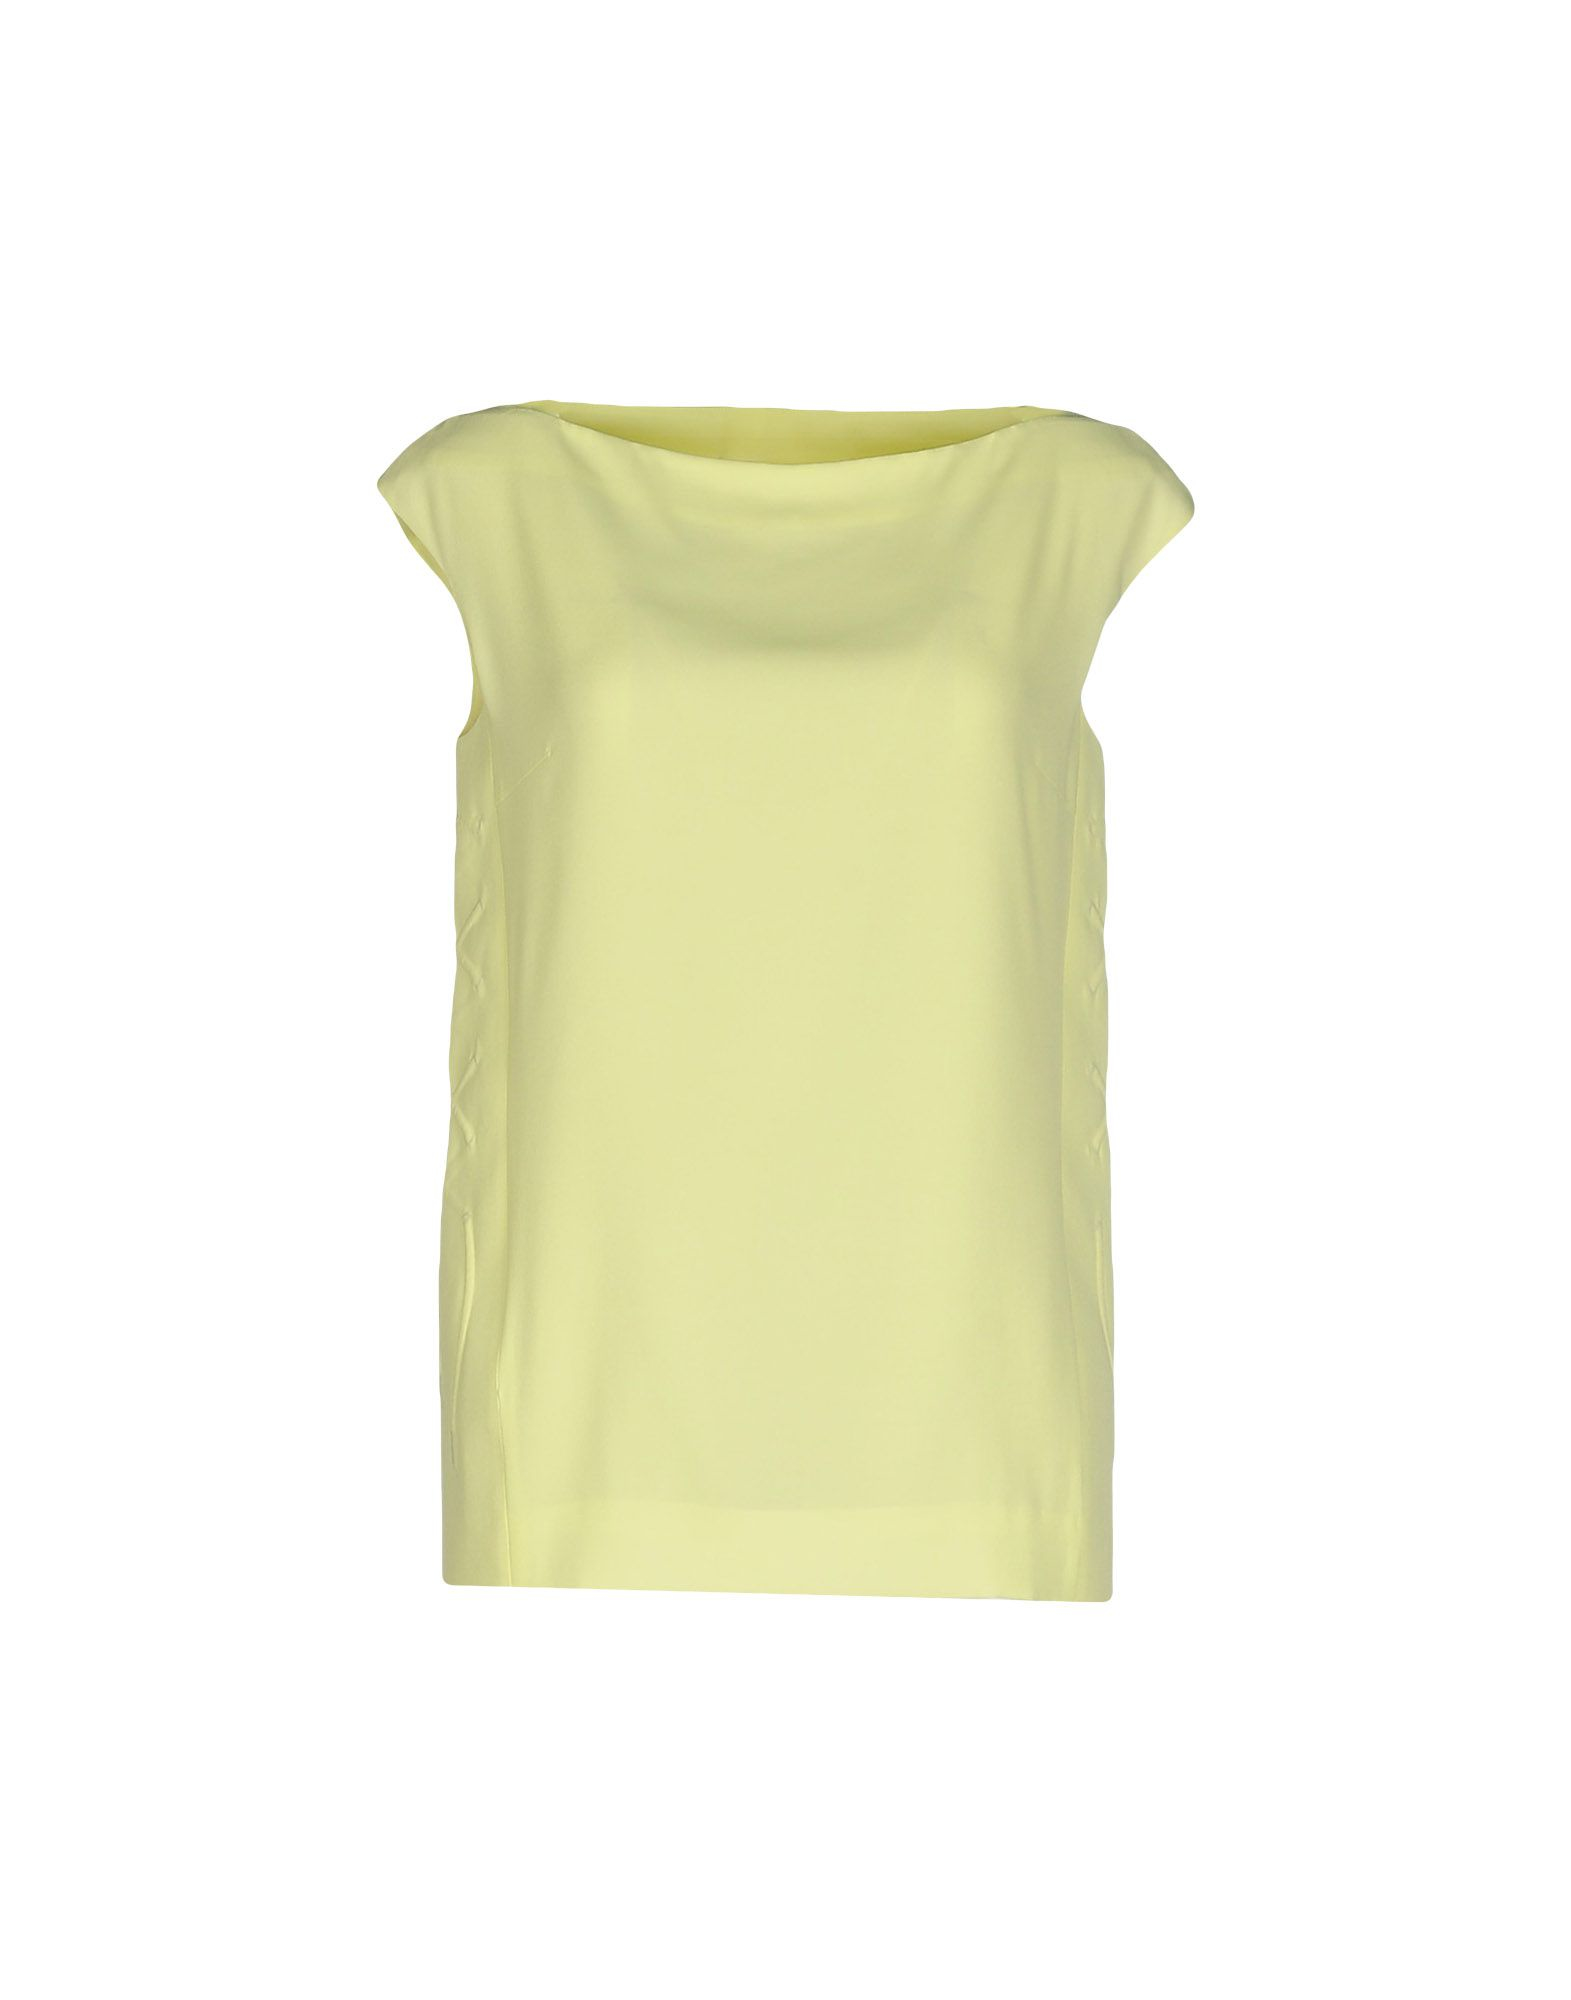 Maison margiela top in yellow lyst for A la maison lotion